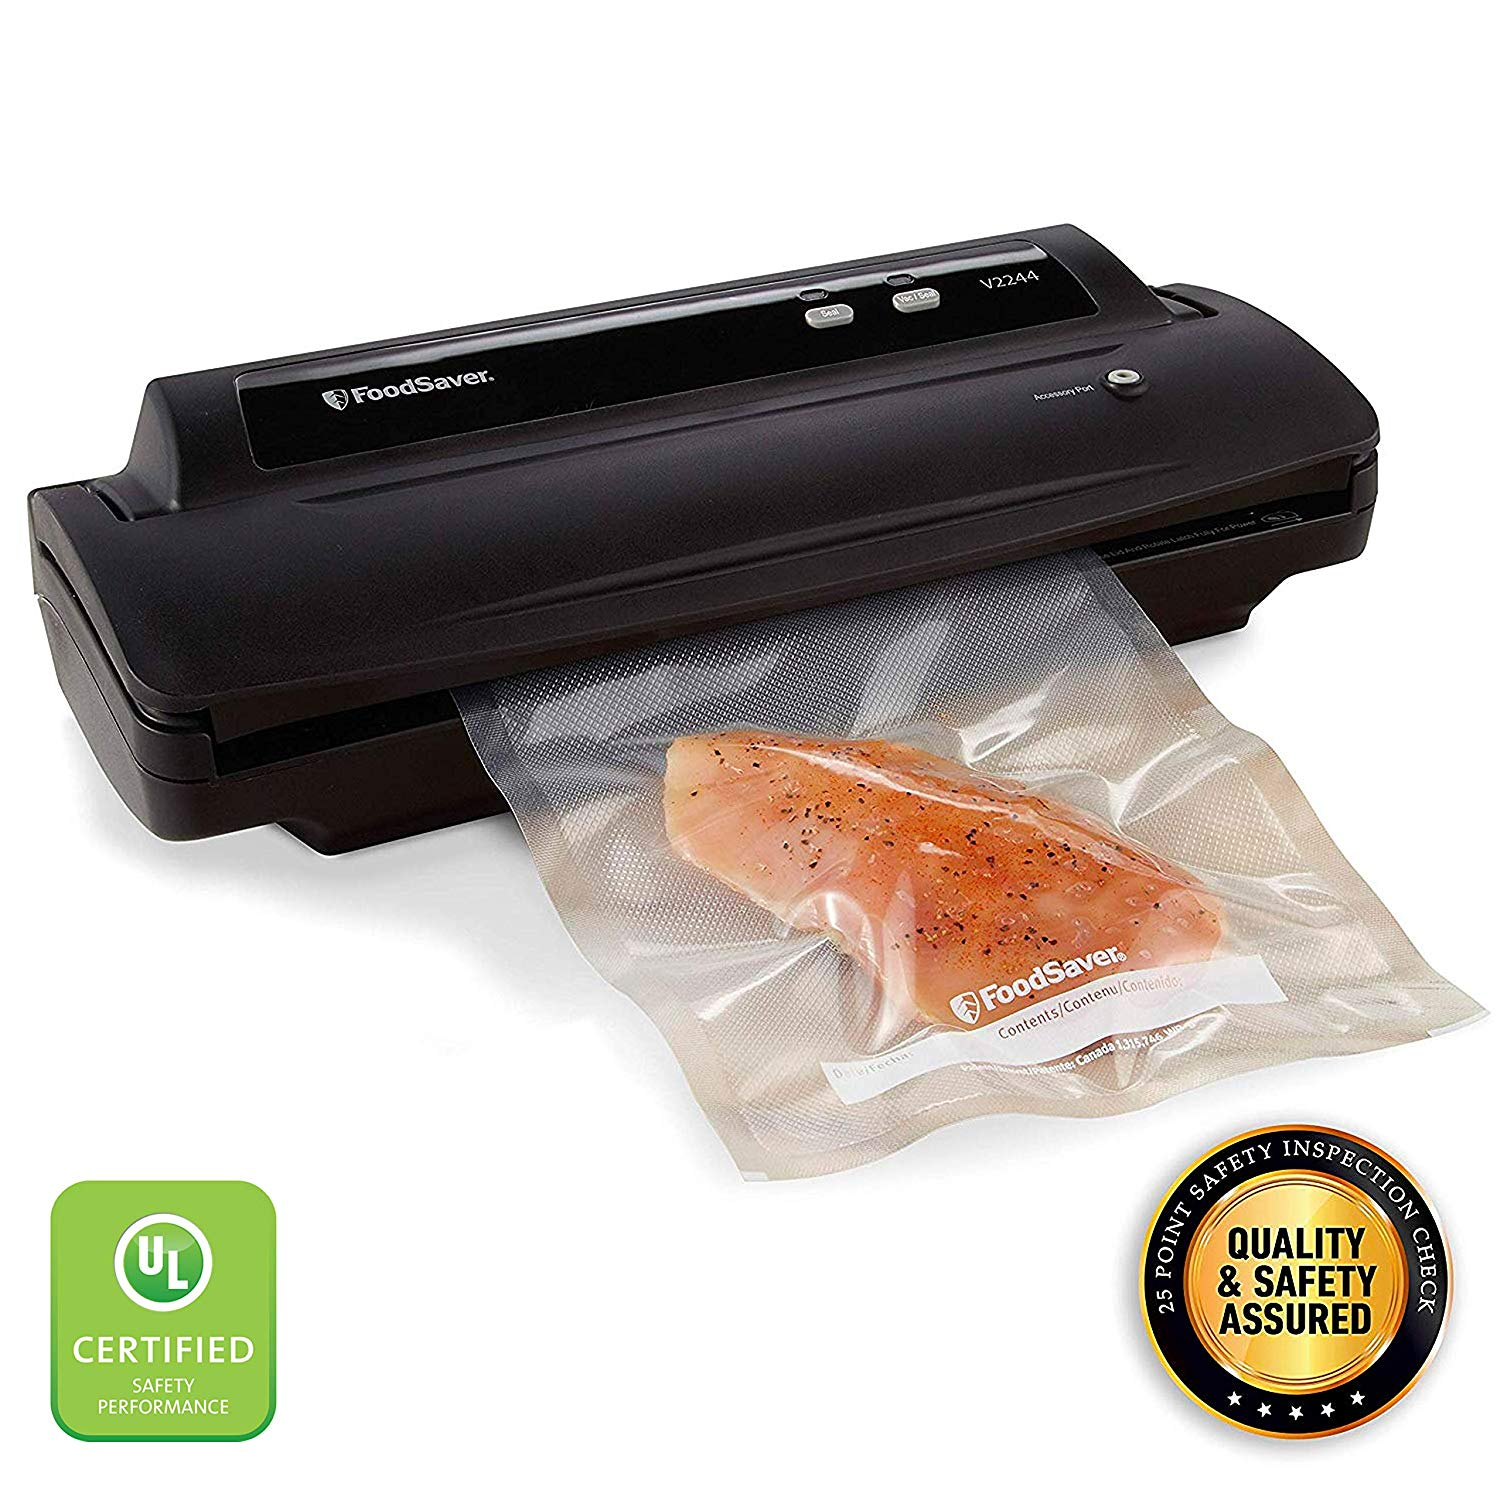 FoodSaver best vacuum sealer